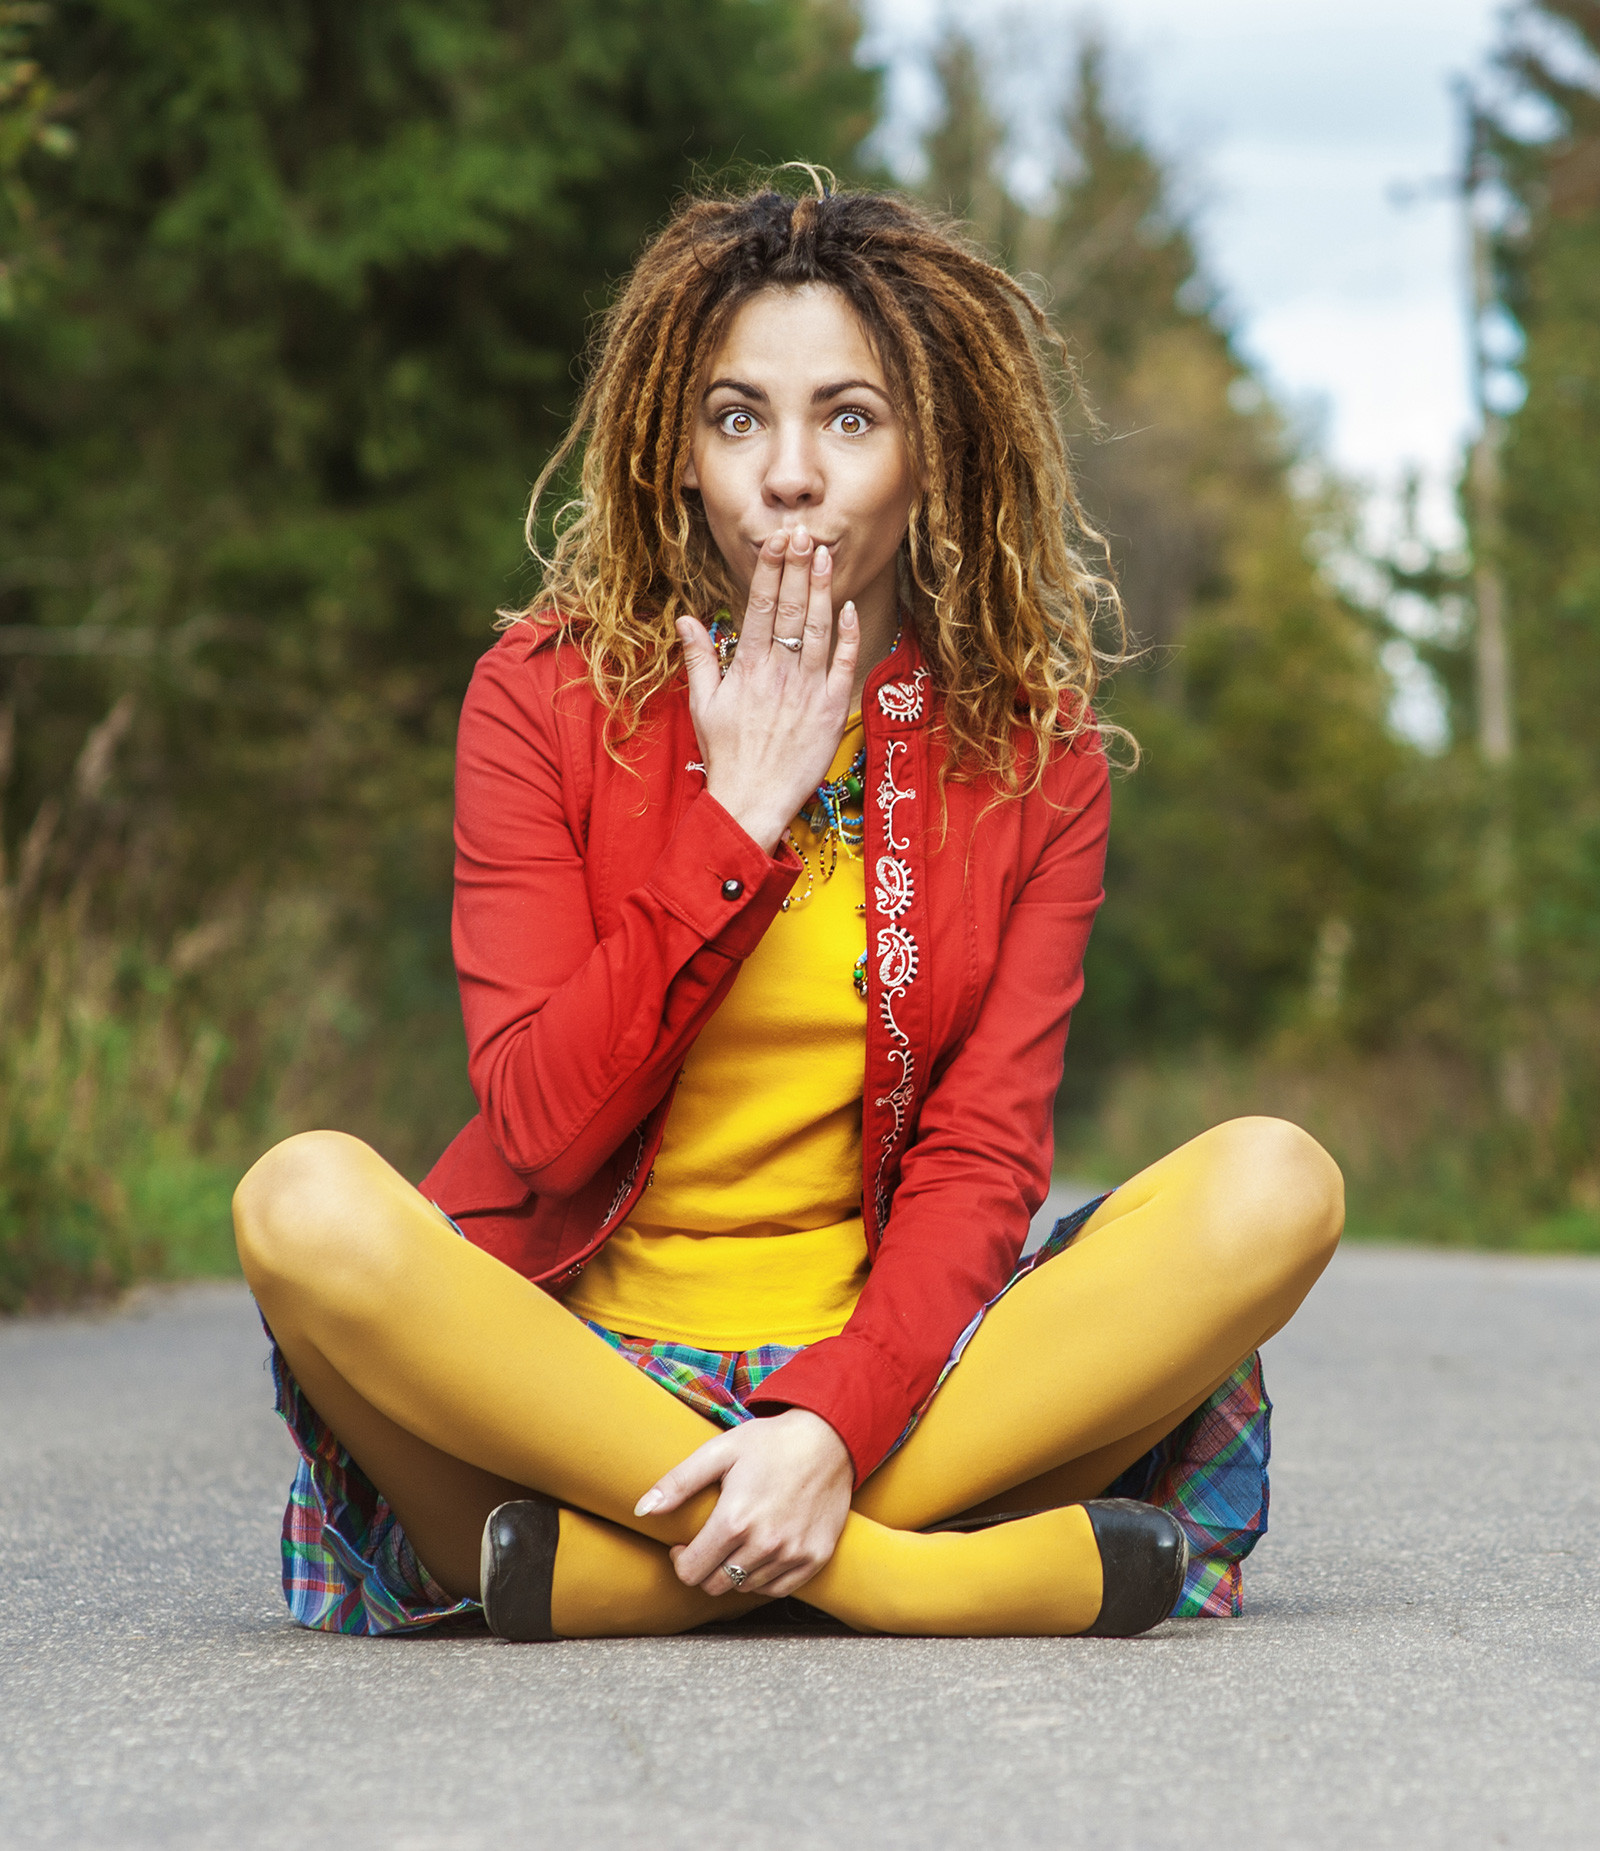 A young, colorful woman with dreadlocks in shock.